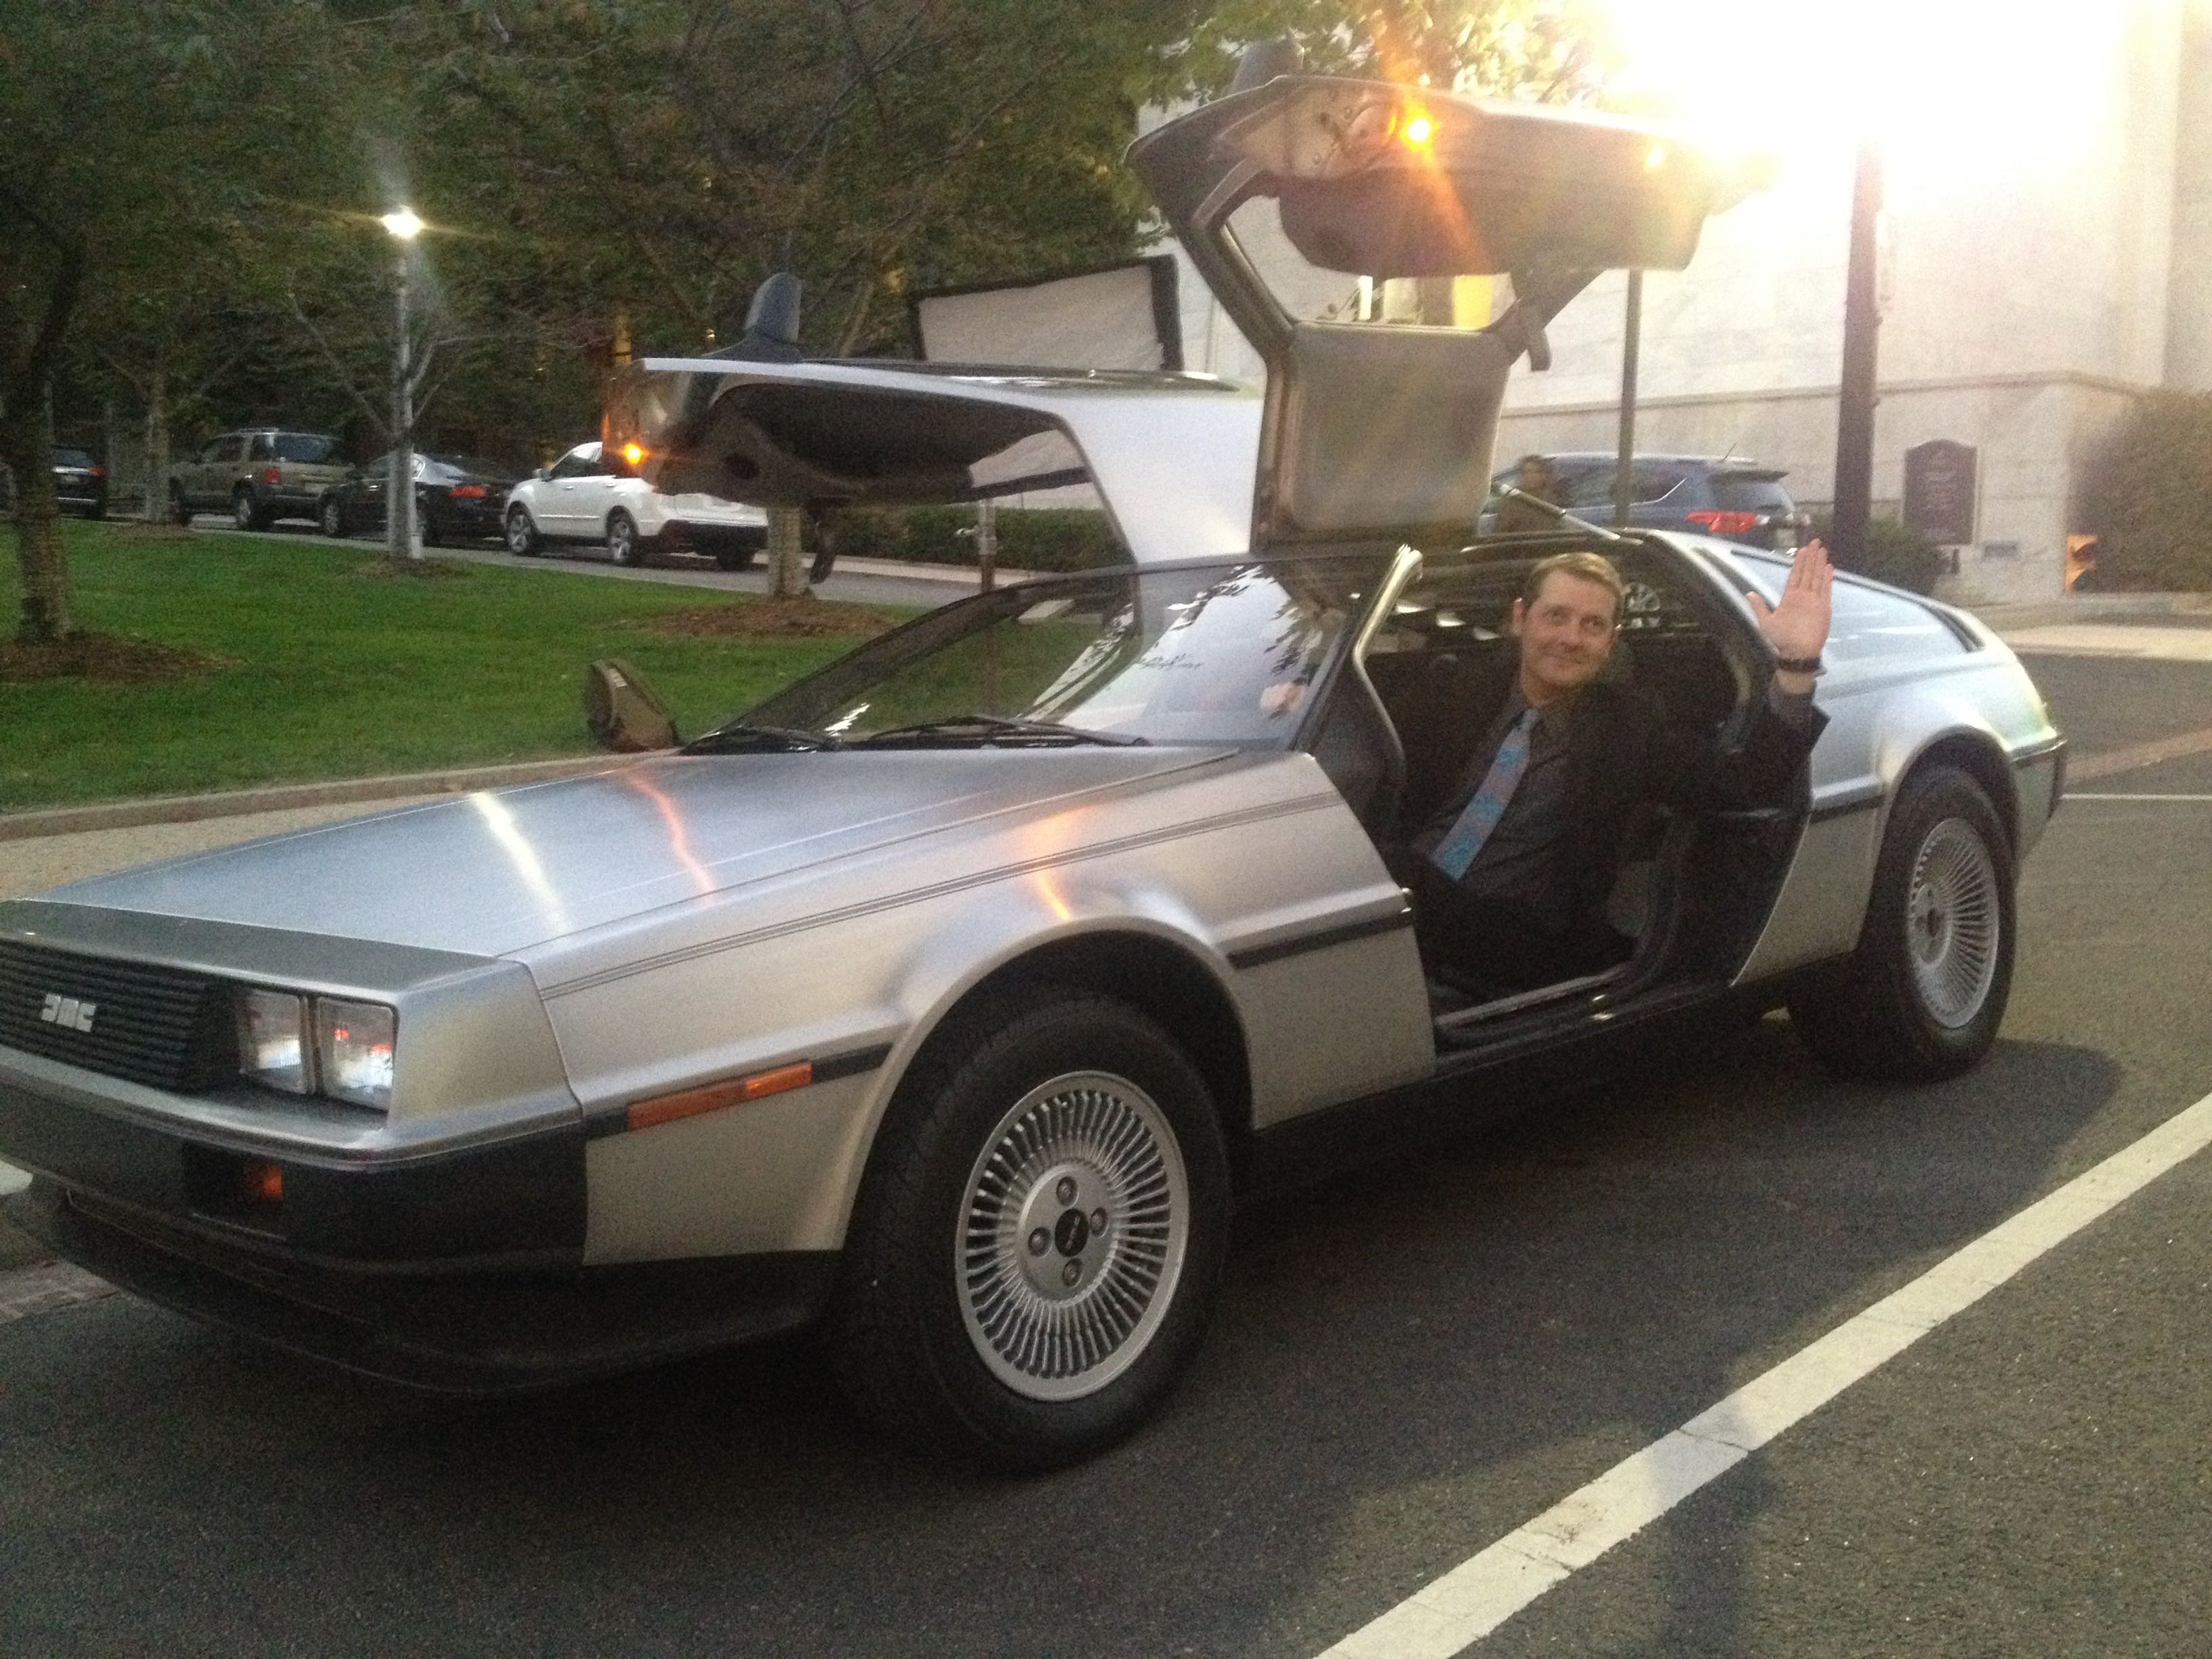 Wadkins in a DeLorean from theBack to the Futuremovie, at a Motion Picture Association of America reception on Capitol Hill.